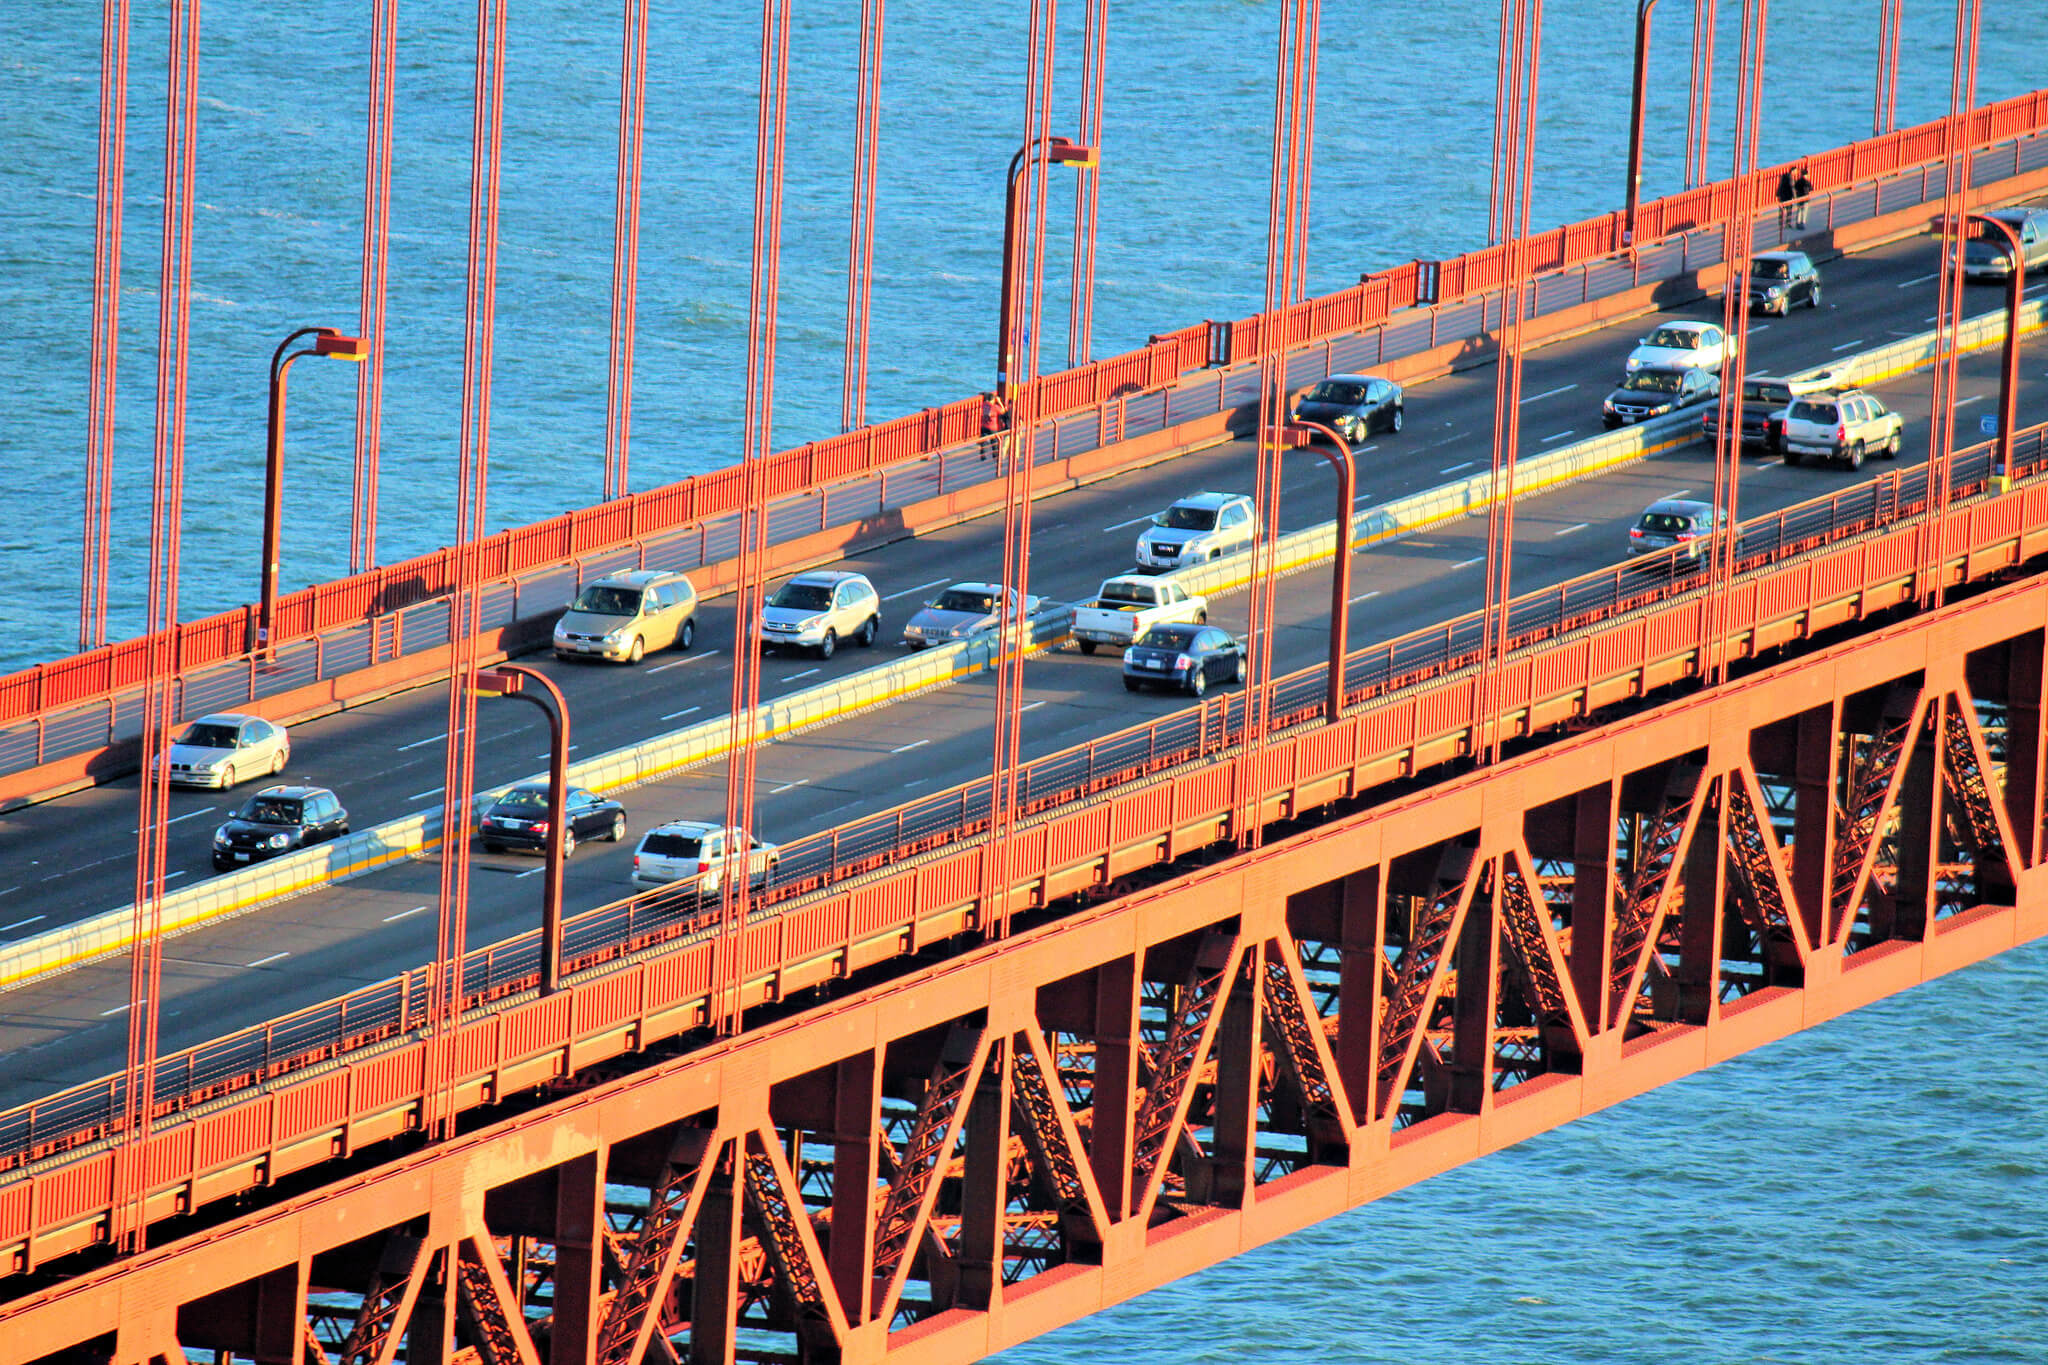 Golden Gate Bridge barrier